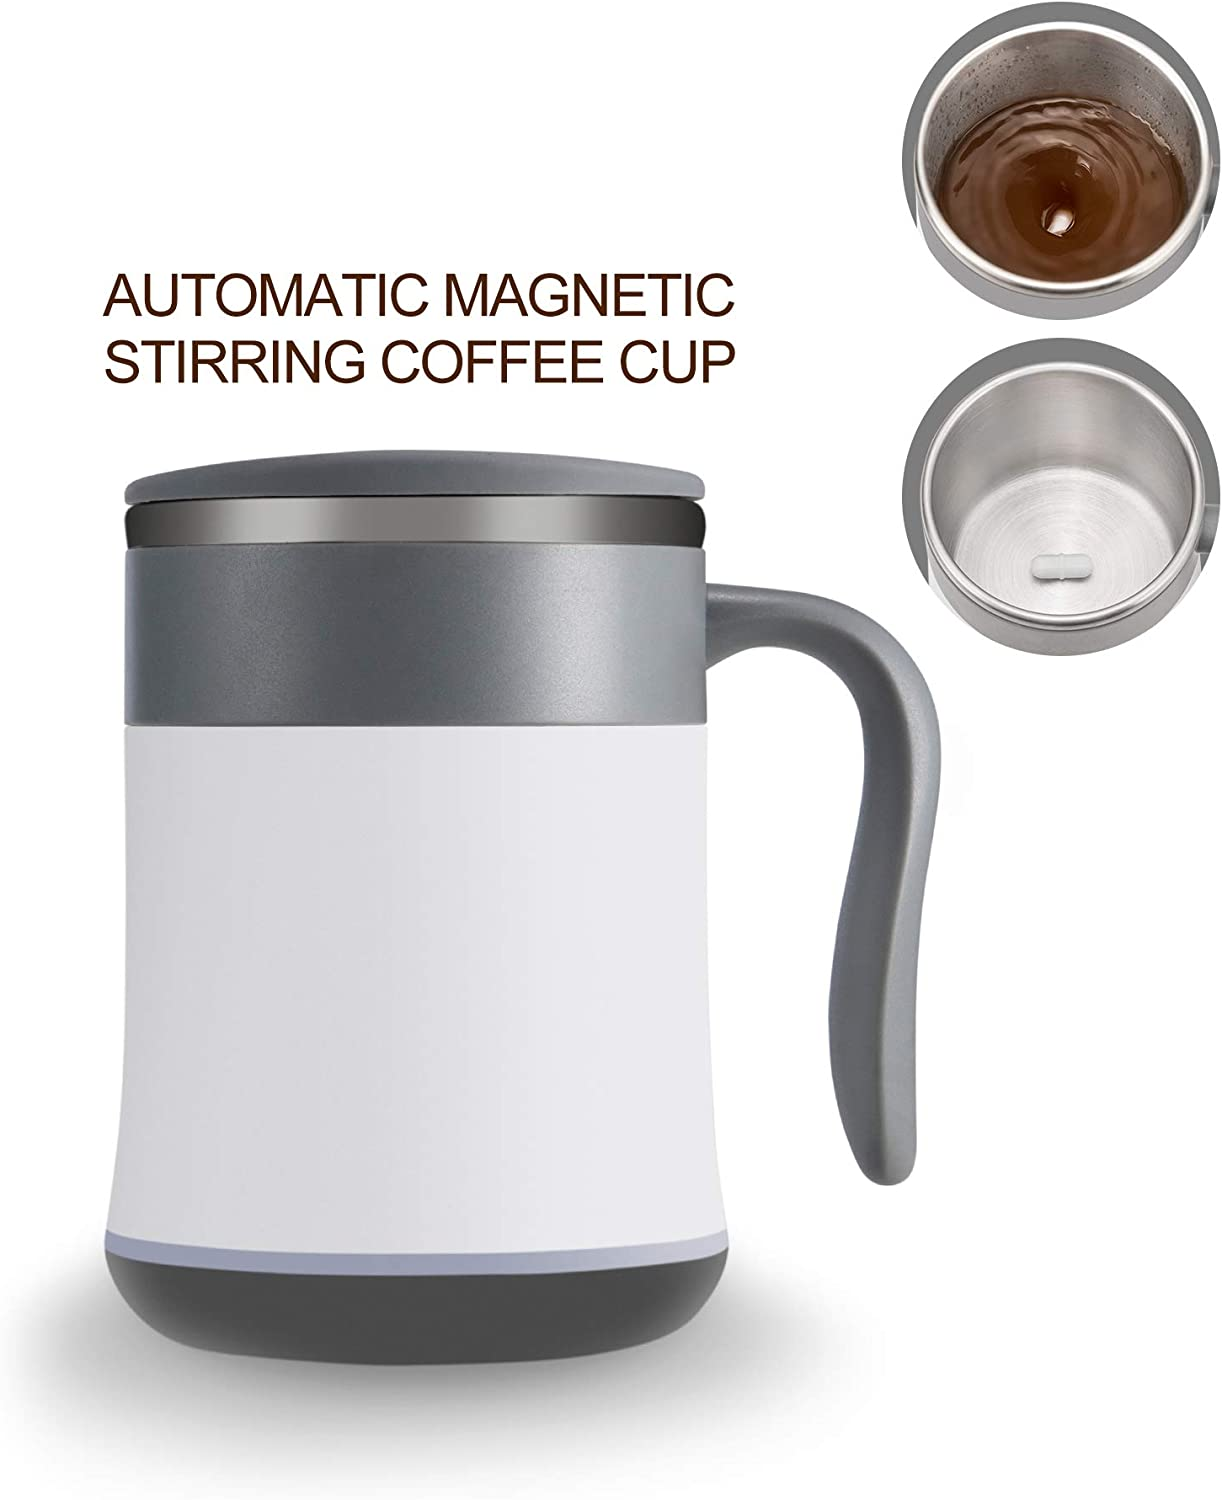 automatic electromagnetic stirring coffee cup,self stirring coffee mug battery-free hot water insulation, self-mixing cup, beverage, cup, compact, waterproof, lightweight, home, work, travel gifts